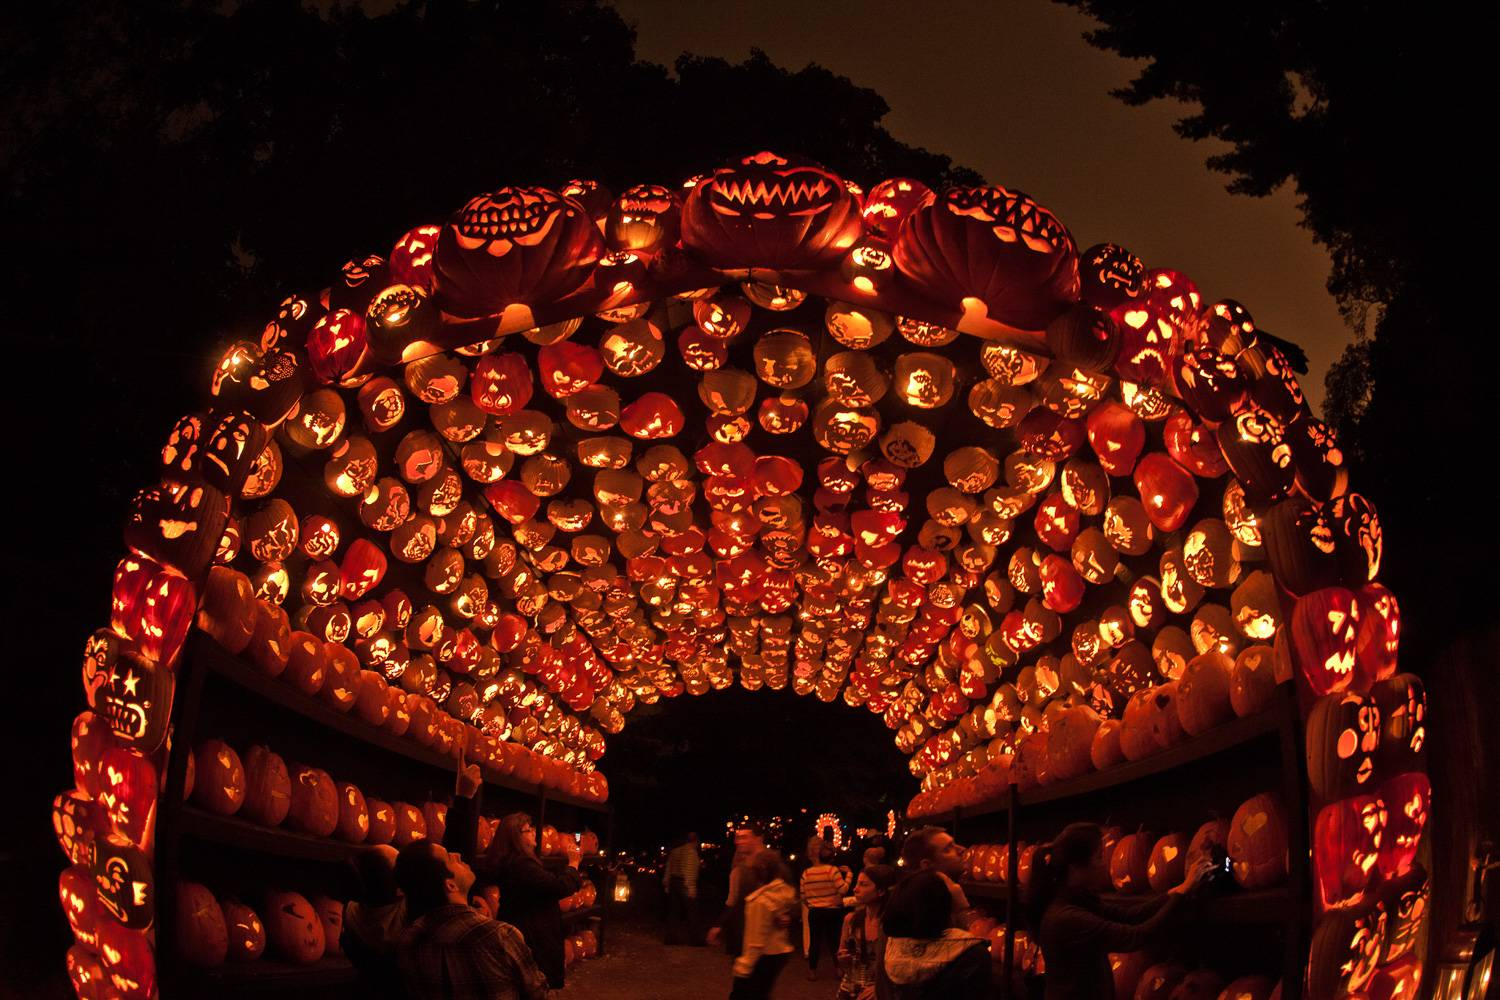 Image of illuminated jack o' lanterns arranged into an arch at the Great Jack o' Lantern Blaze in New York.